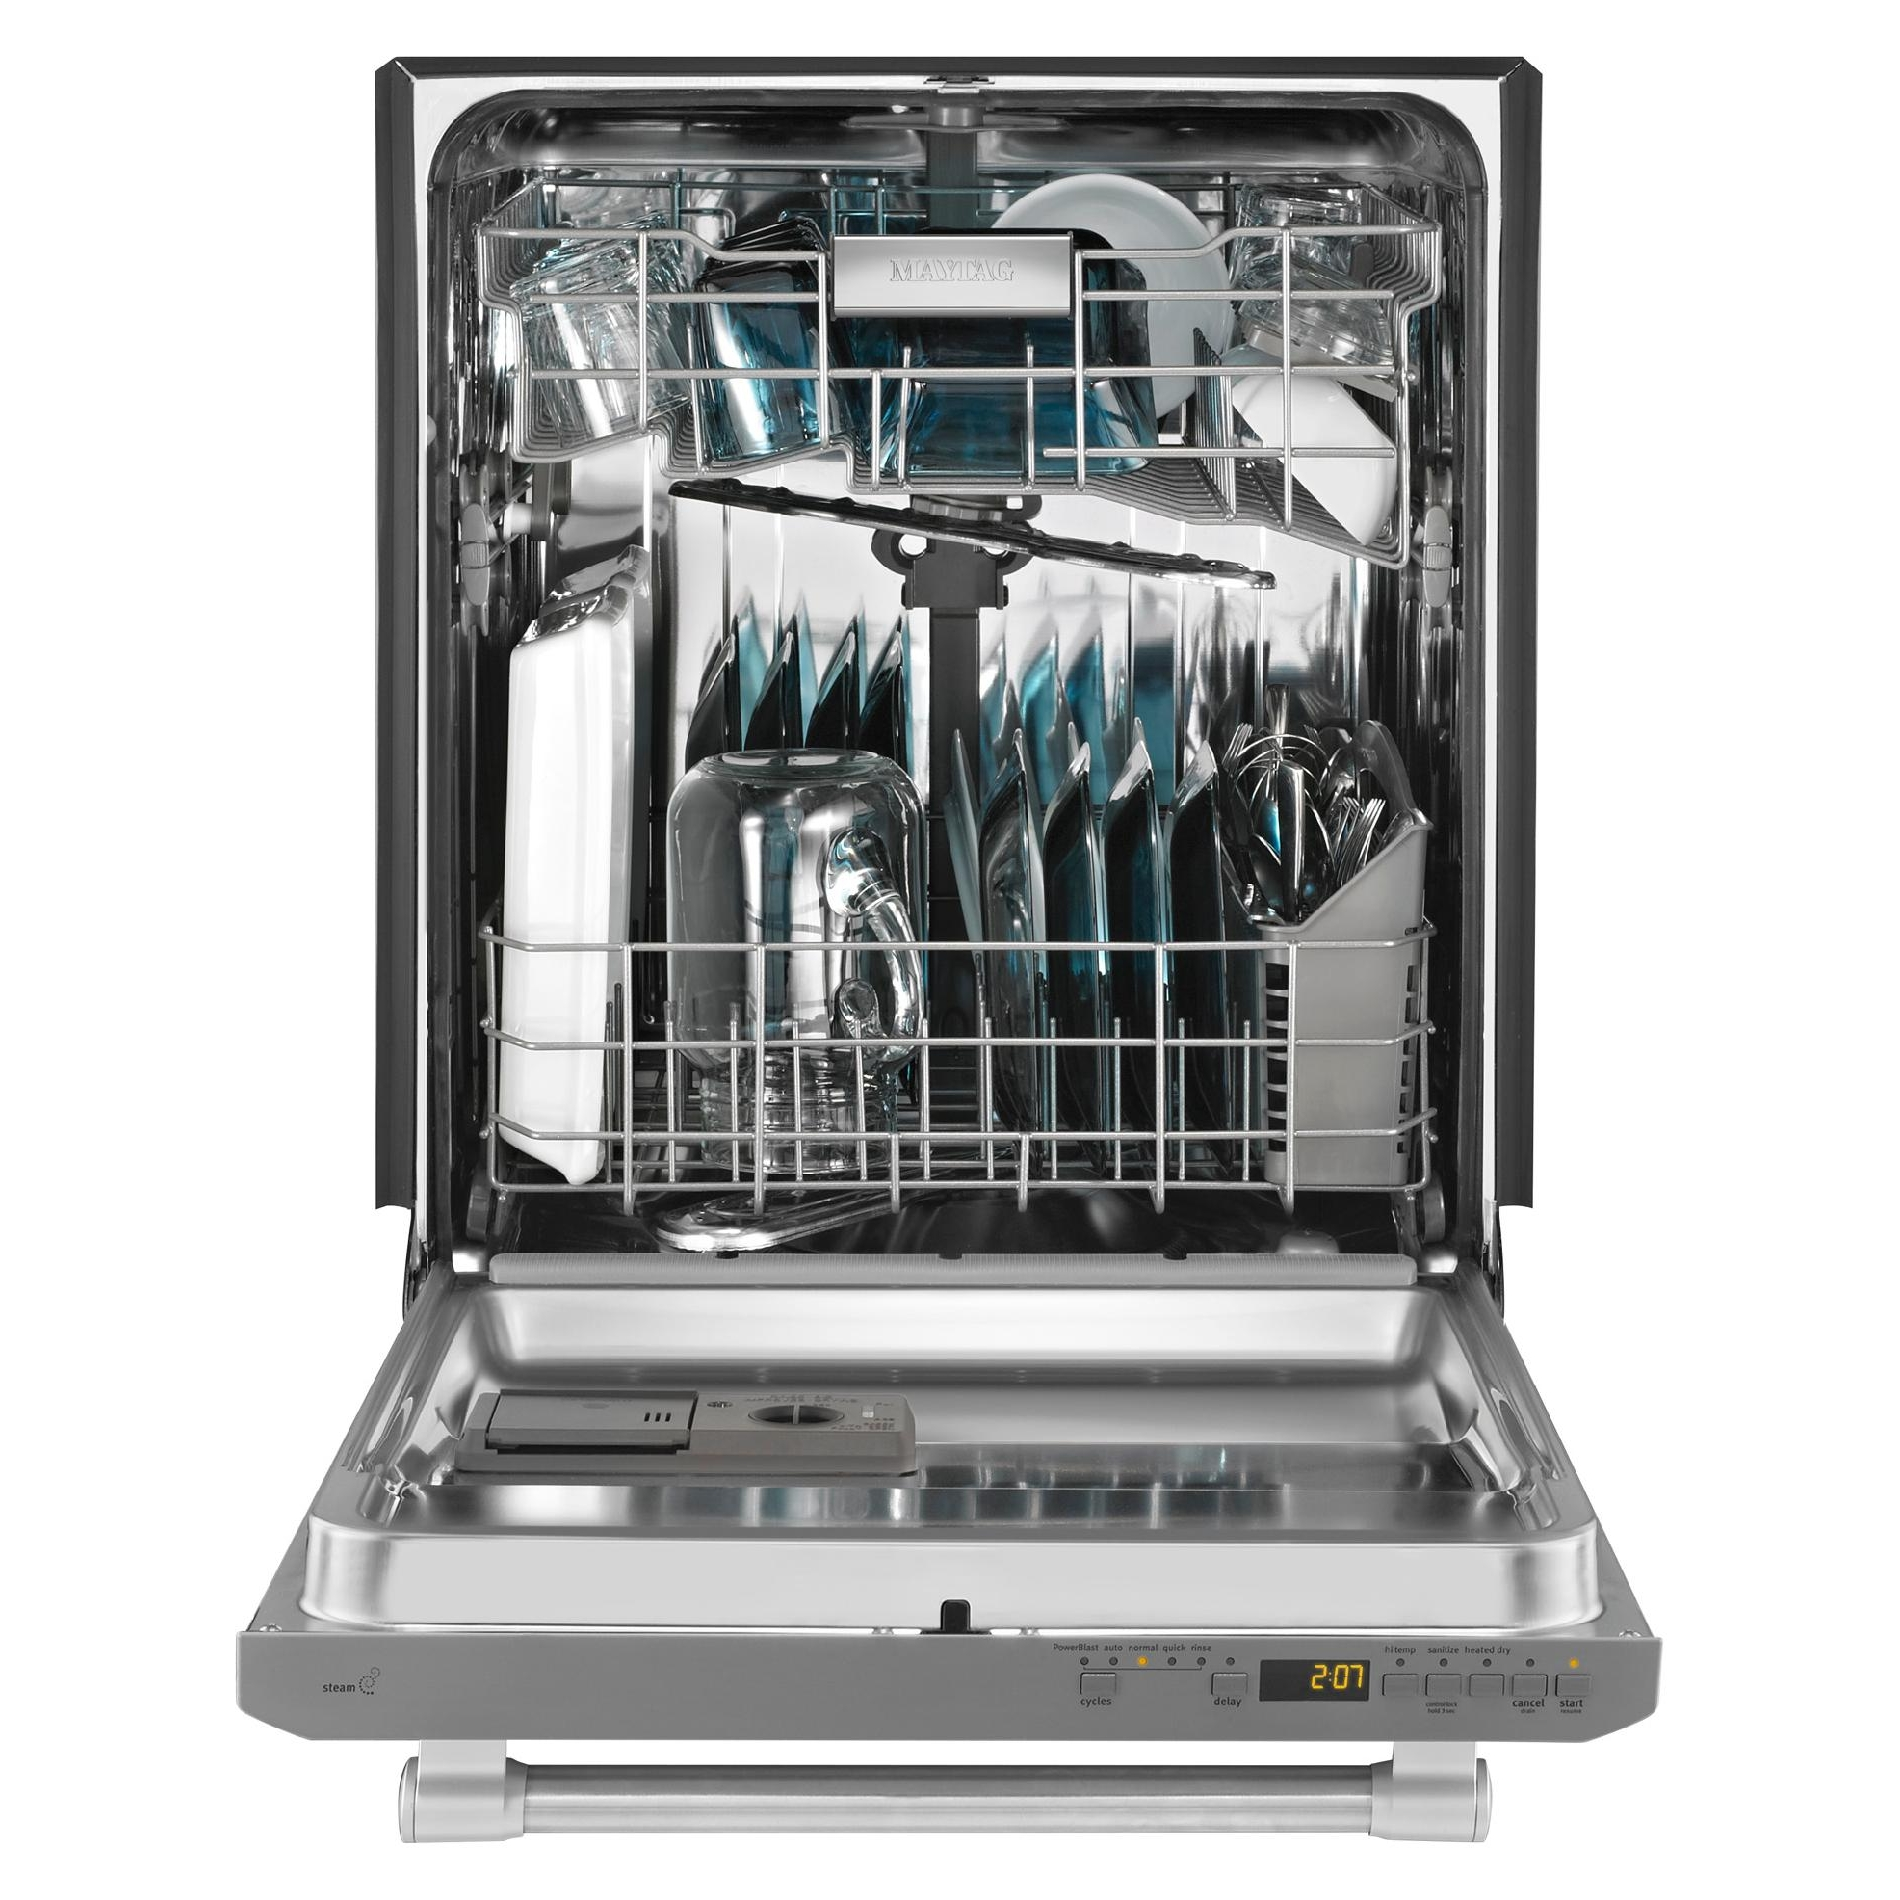 "Maytag MDB5969SDM 24"" Built-In Dishwasher w/ Fully-Integrated Door - Stainless Steel"